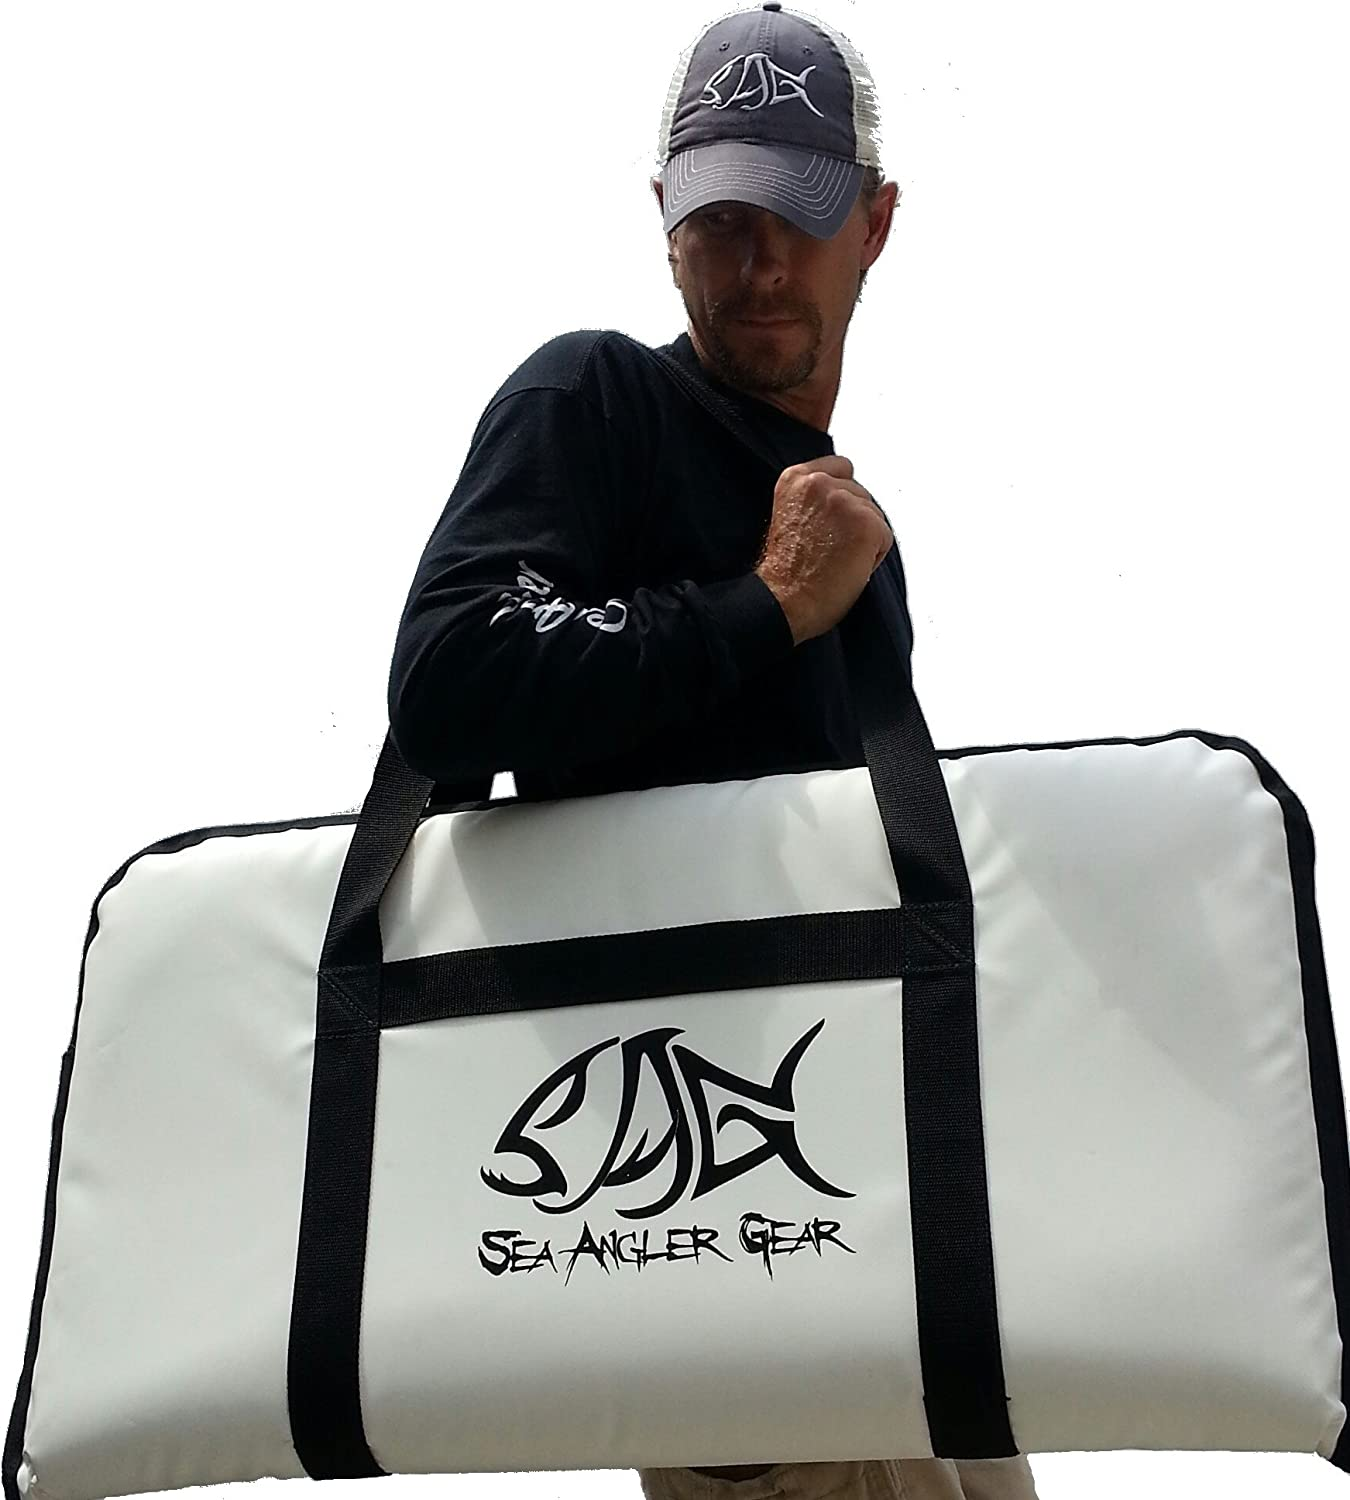 GAOAG 36×20 Inshore Fish Bag